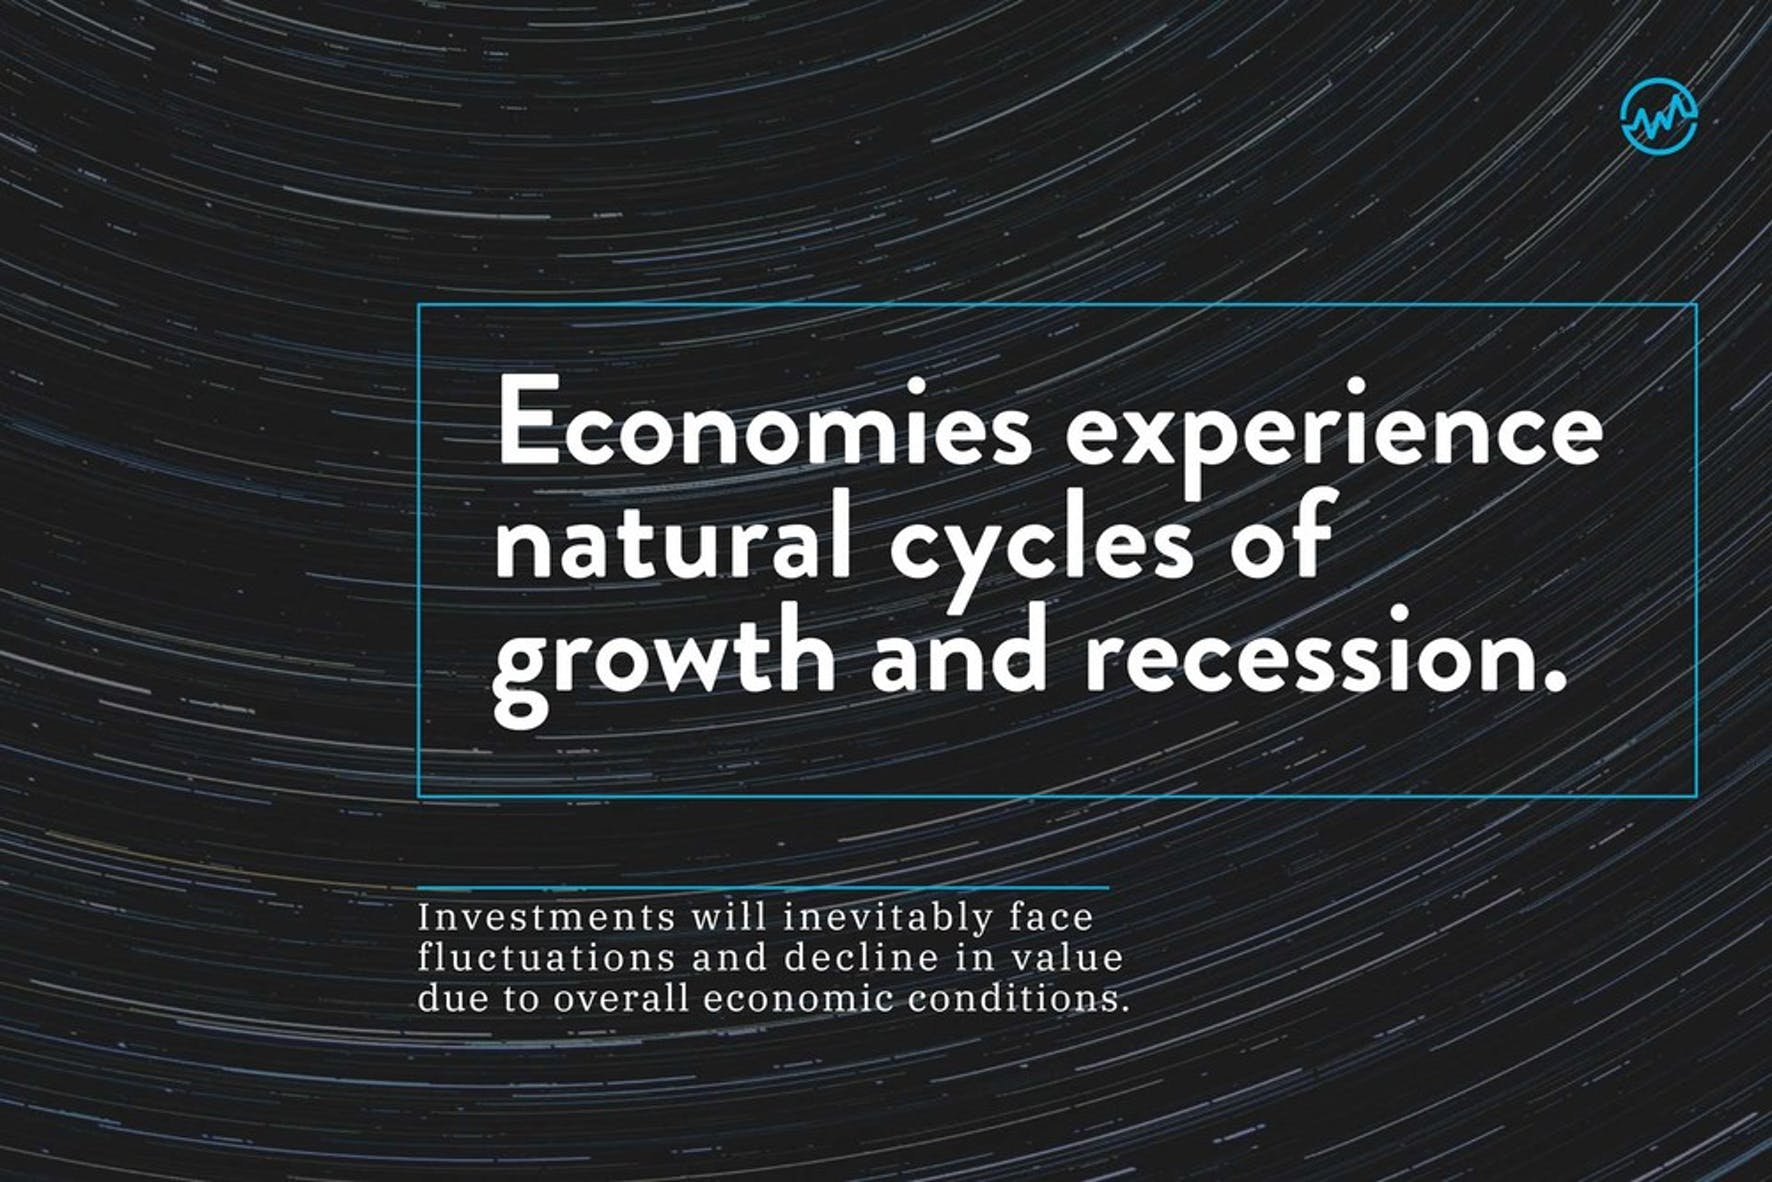 Economies experience natural cycles of growth and recession graphic